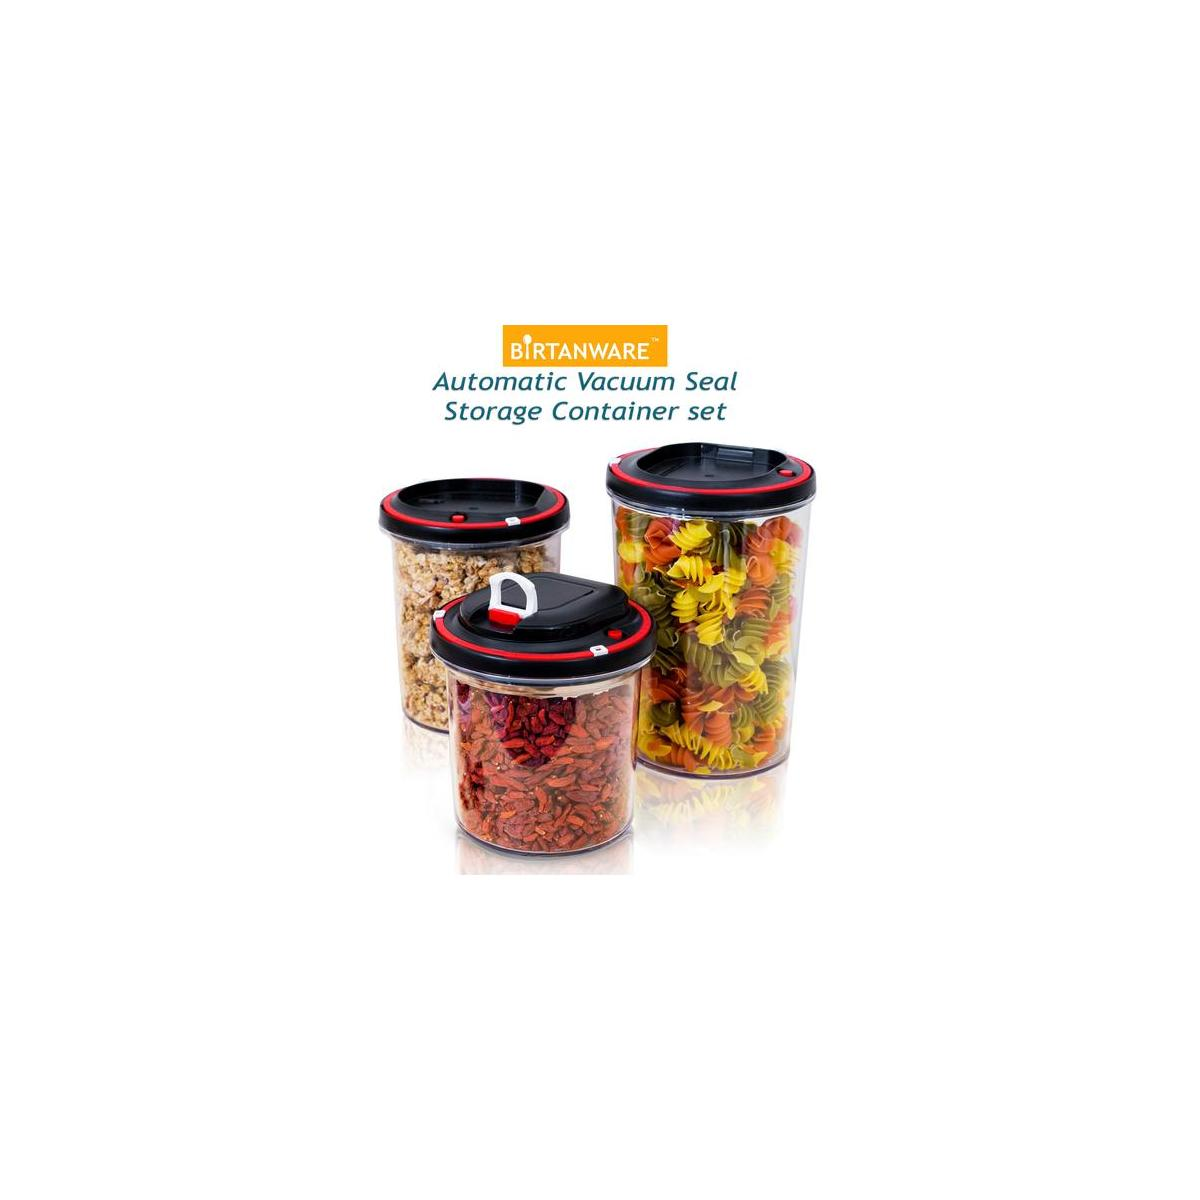 Vacuum Pump Food Storage Containers | Set of 3 | Airtight Lids | Pantry Organization | Cereal Container